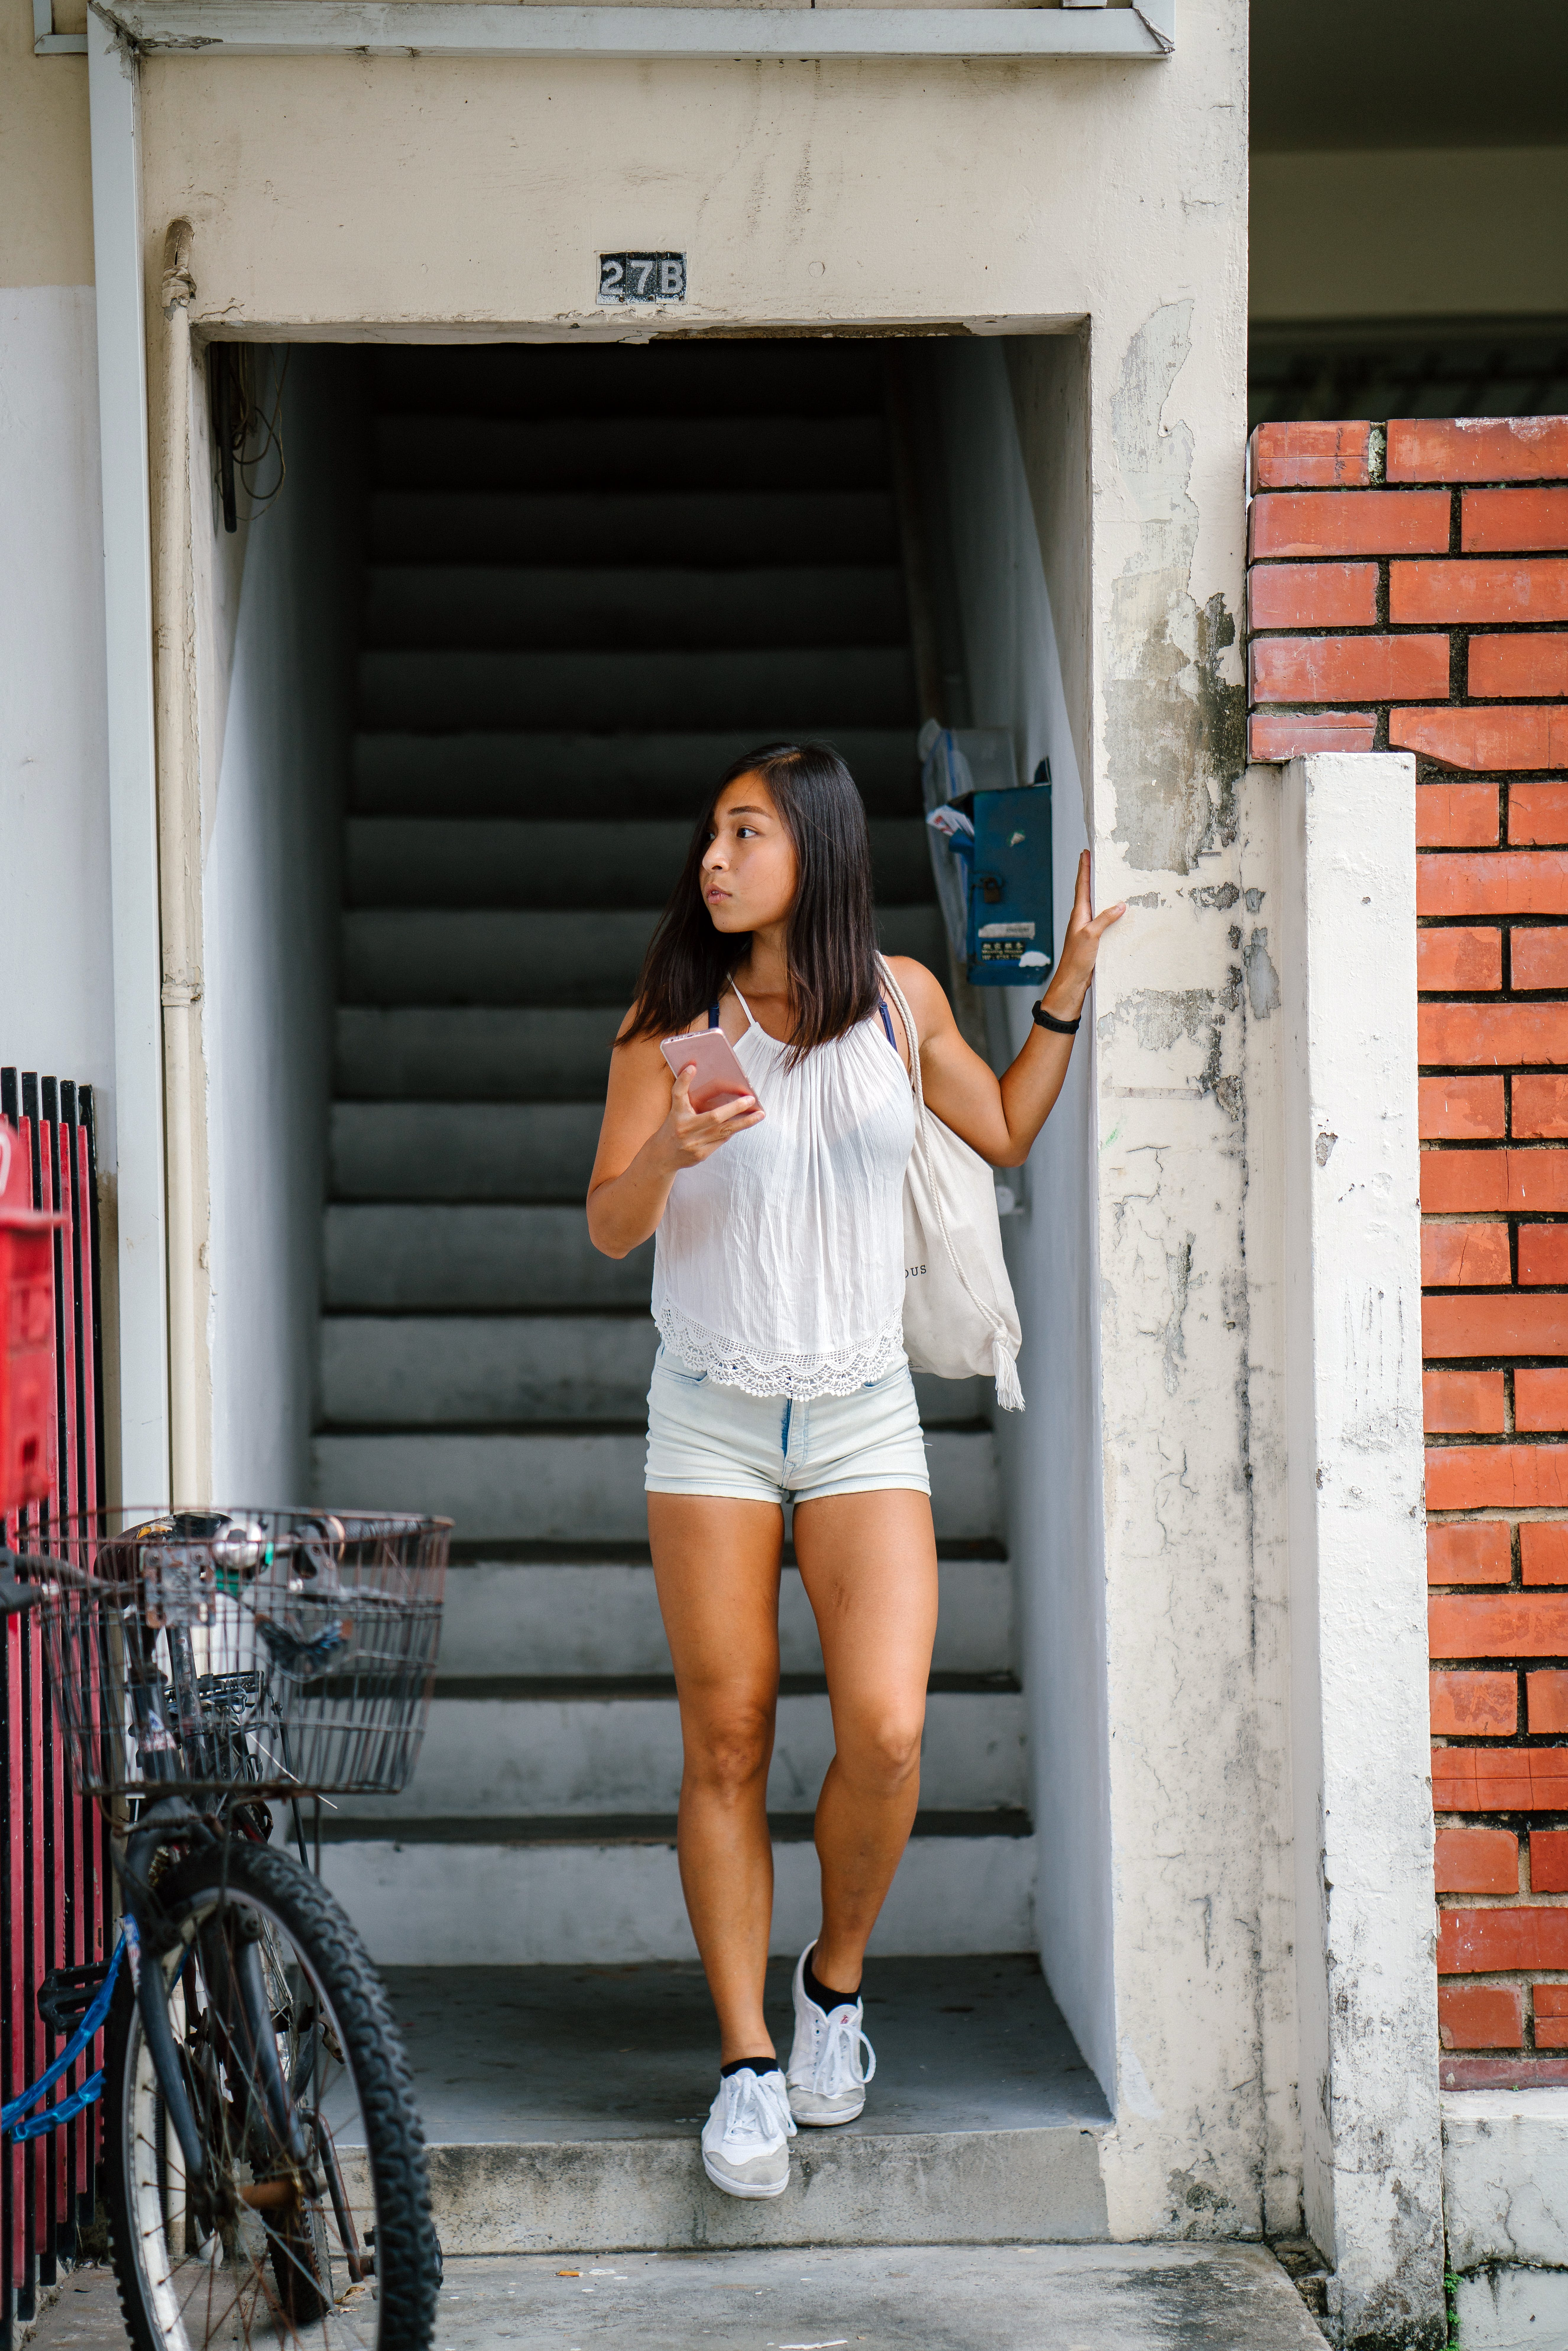 Woman Wearing White Top Holding Smartphone